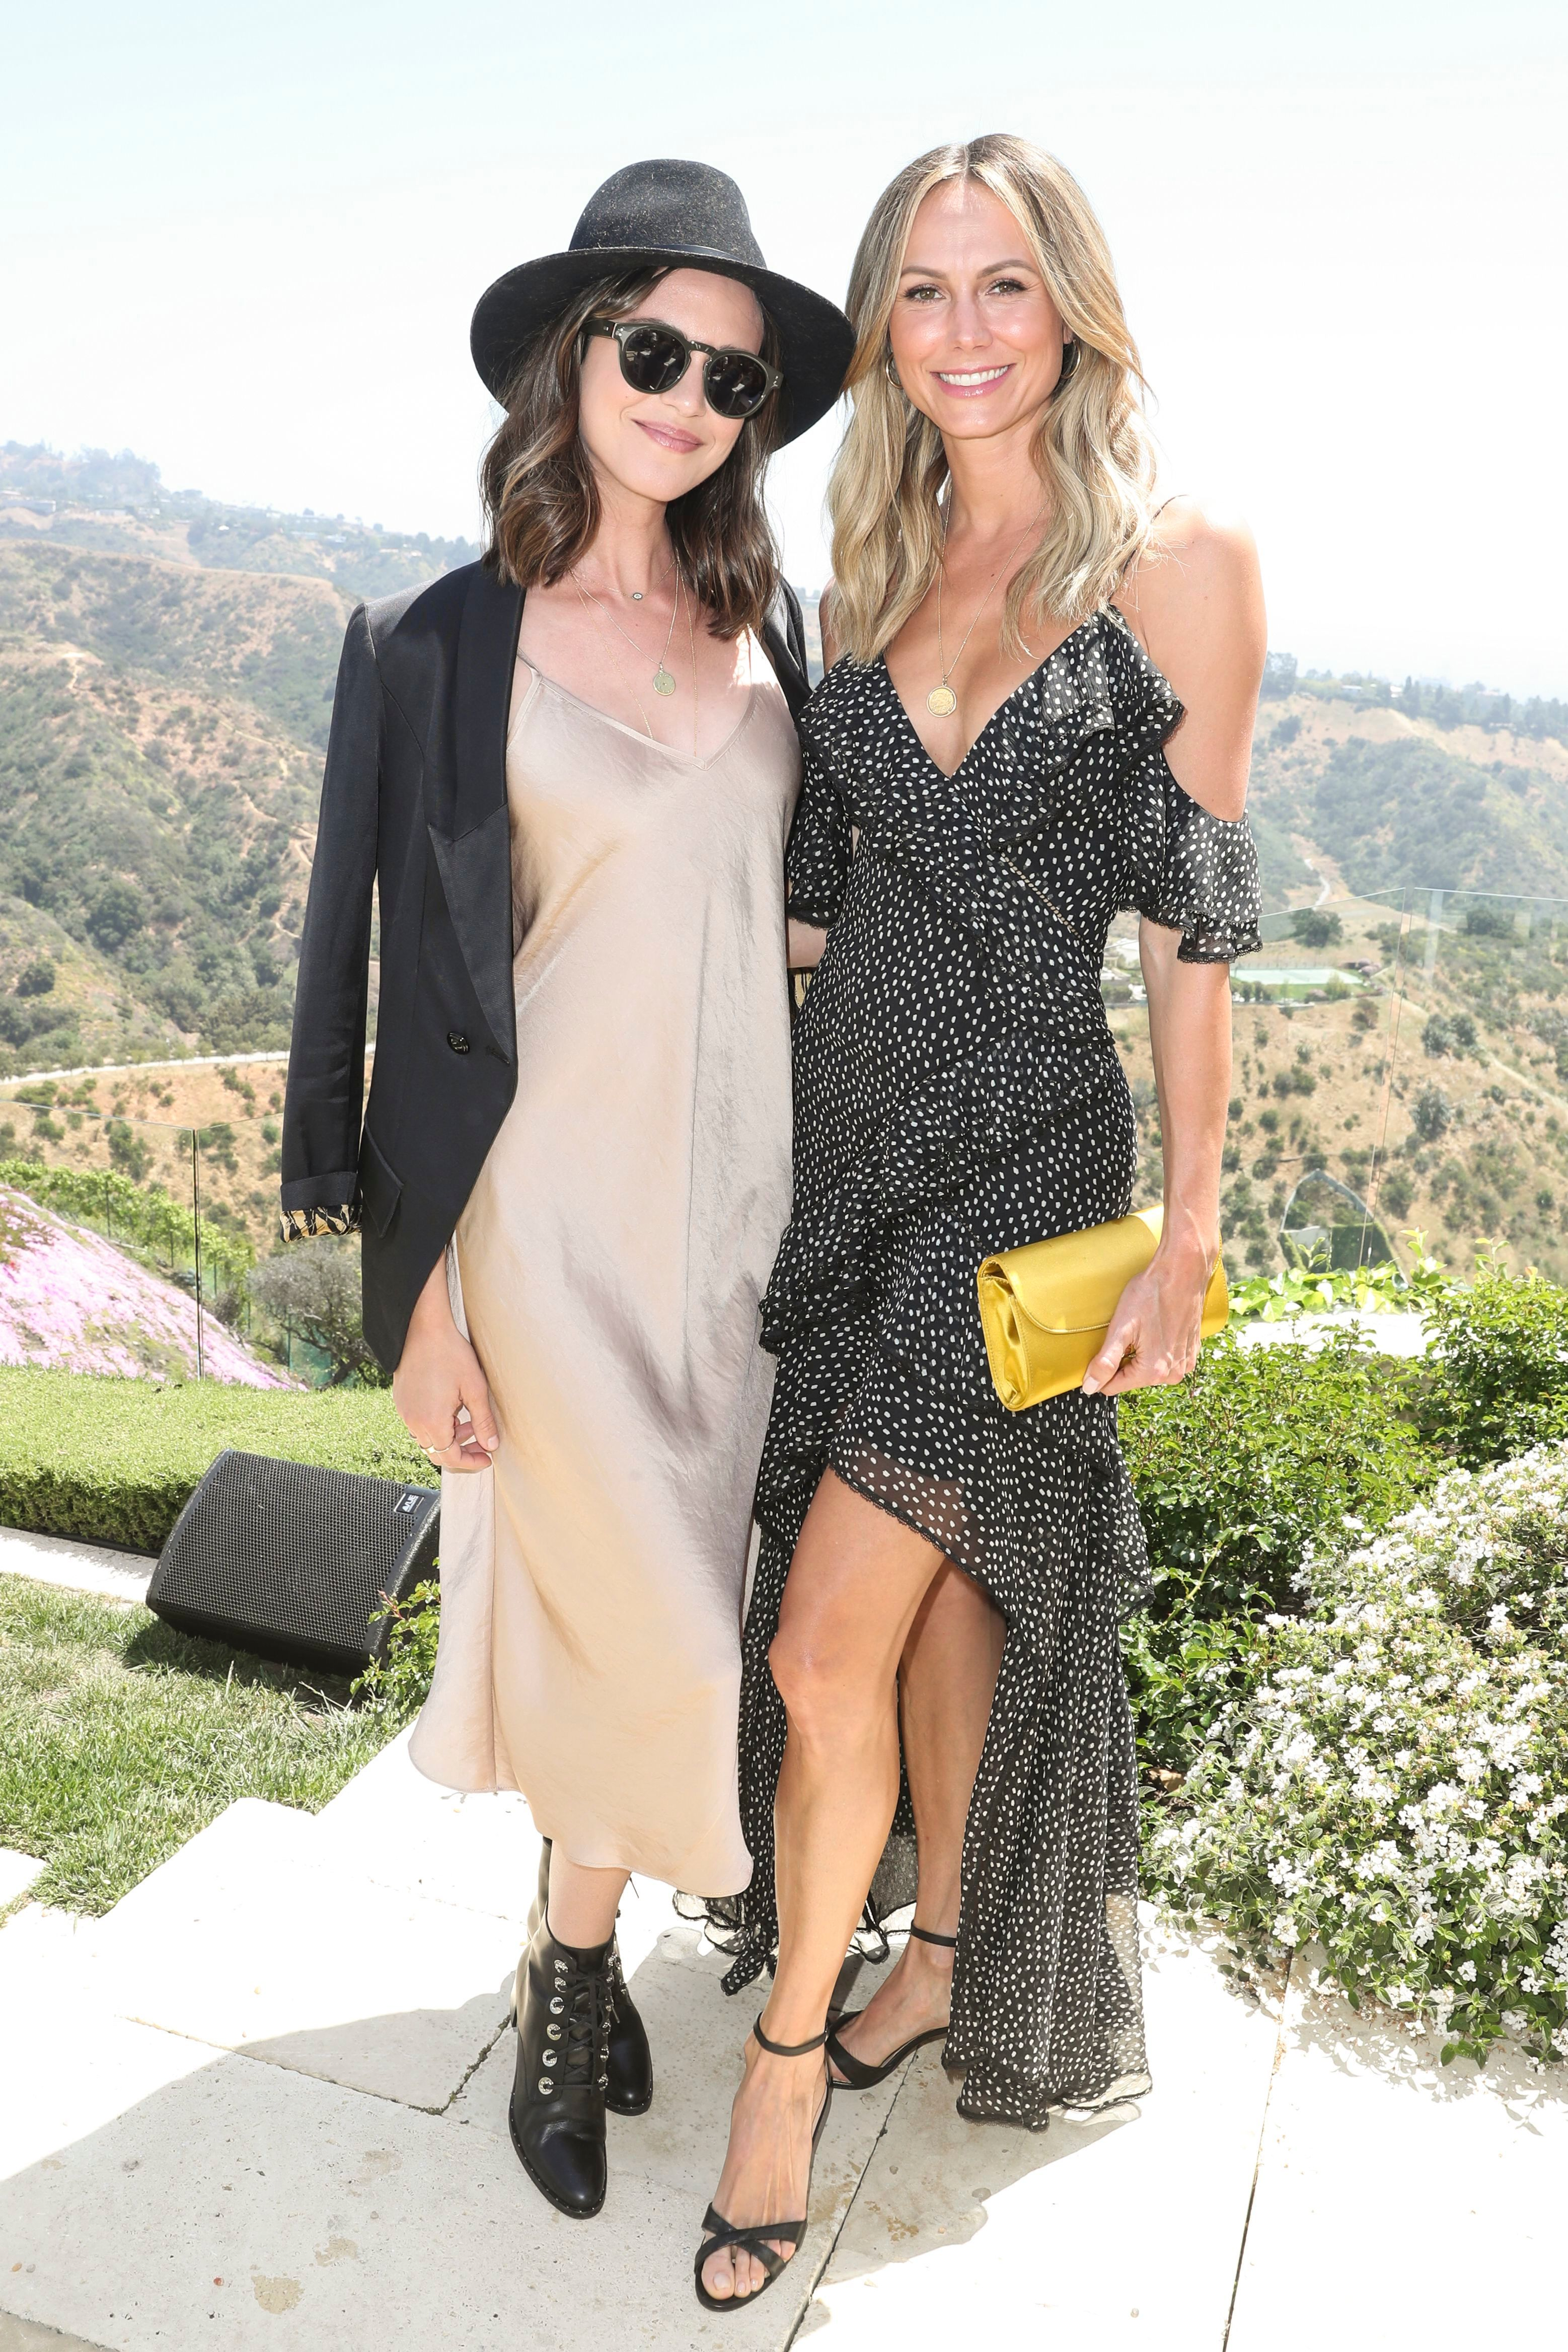 Odette Annabel and Stacy KeiblerH.E.A.R.T. X Valentino, 14 Beverly Park, Los Angeles, USA - 24 Apr 2019